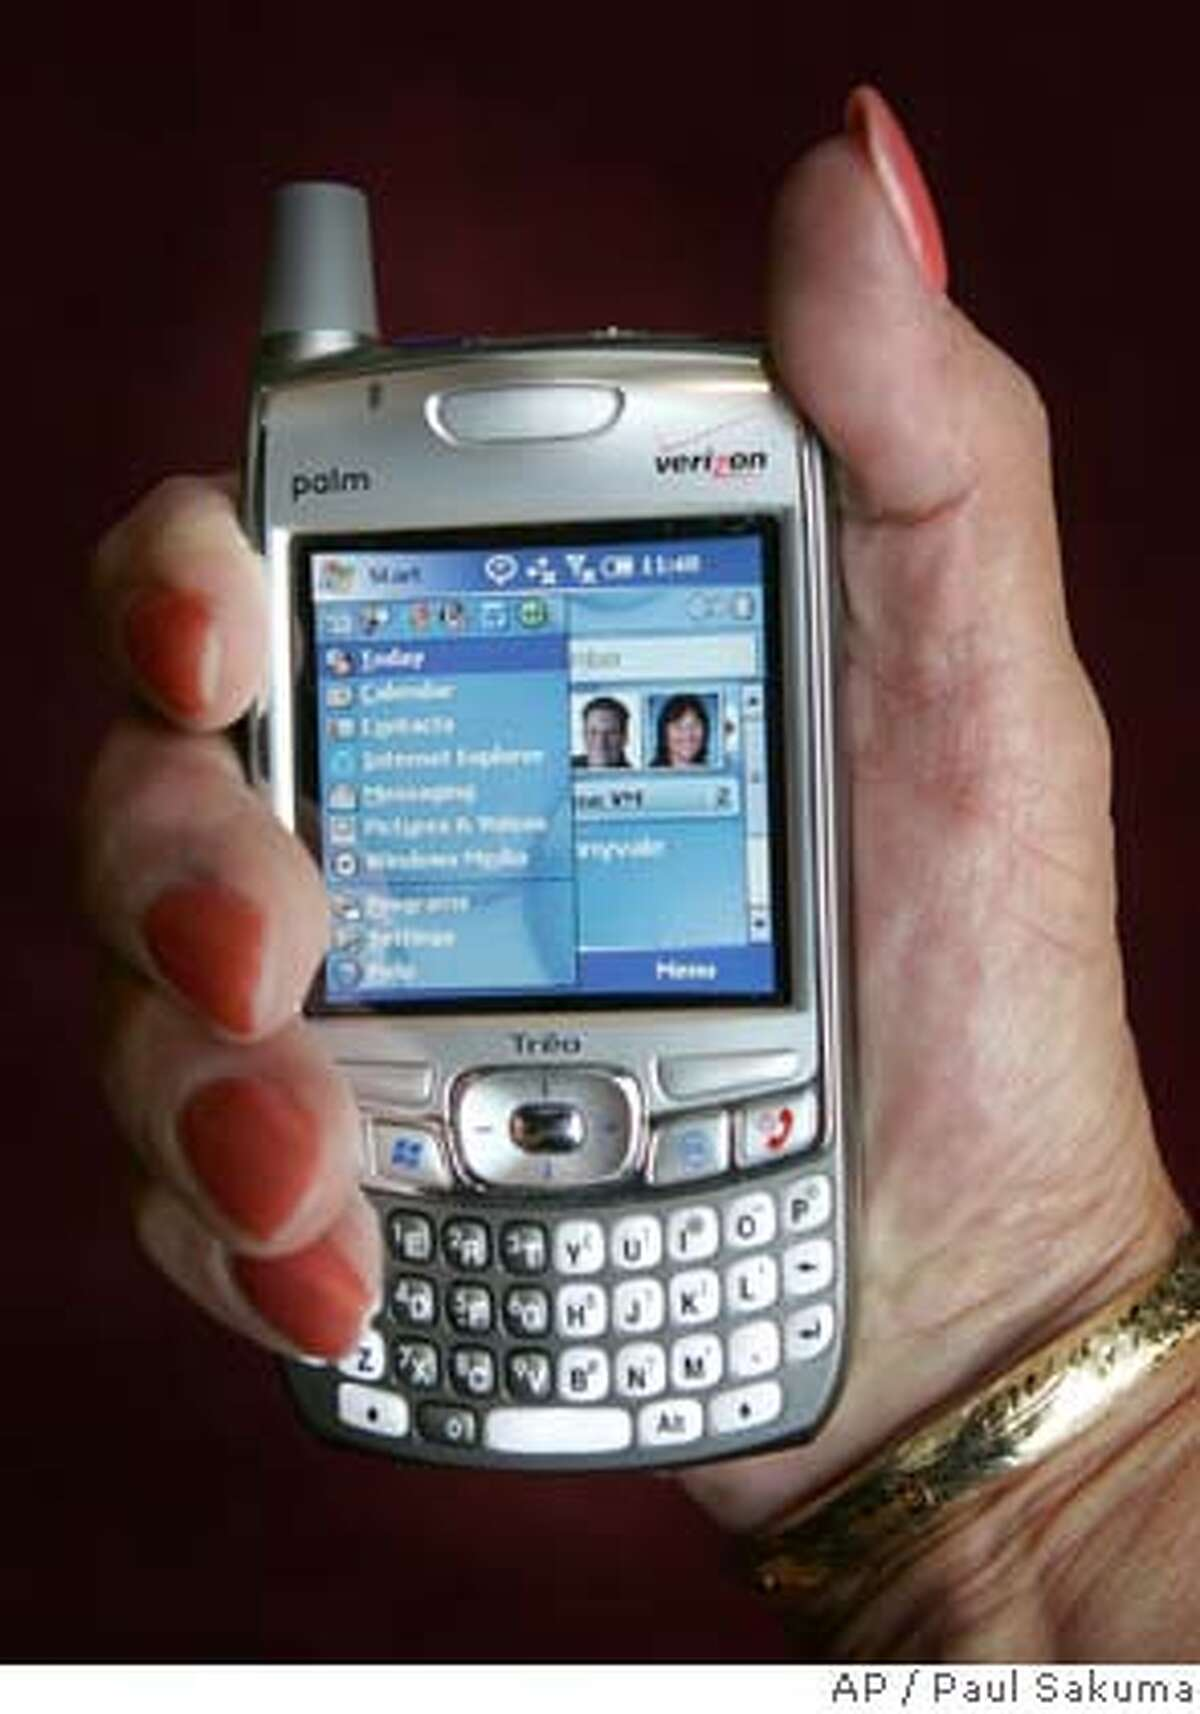 Biruta McShane of Palm Inc., holds up the new Palm Treo smart phone duing a joint news conference with Microsoft Corp., Monday, Sept. 26, 2005 in San Francisco. Palm announced that it has gone into business with former rival Microsoft Corp. to launch a Windows-based Treo smartphone, marking the first time that a Palm product will run on an operating system other than Palm's. (AP Photo/Paul Sakuma)